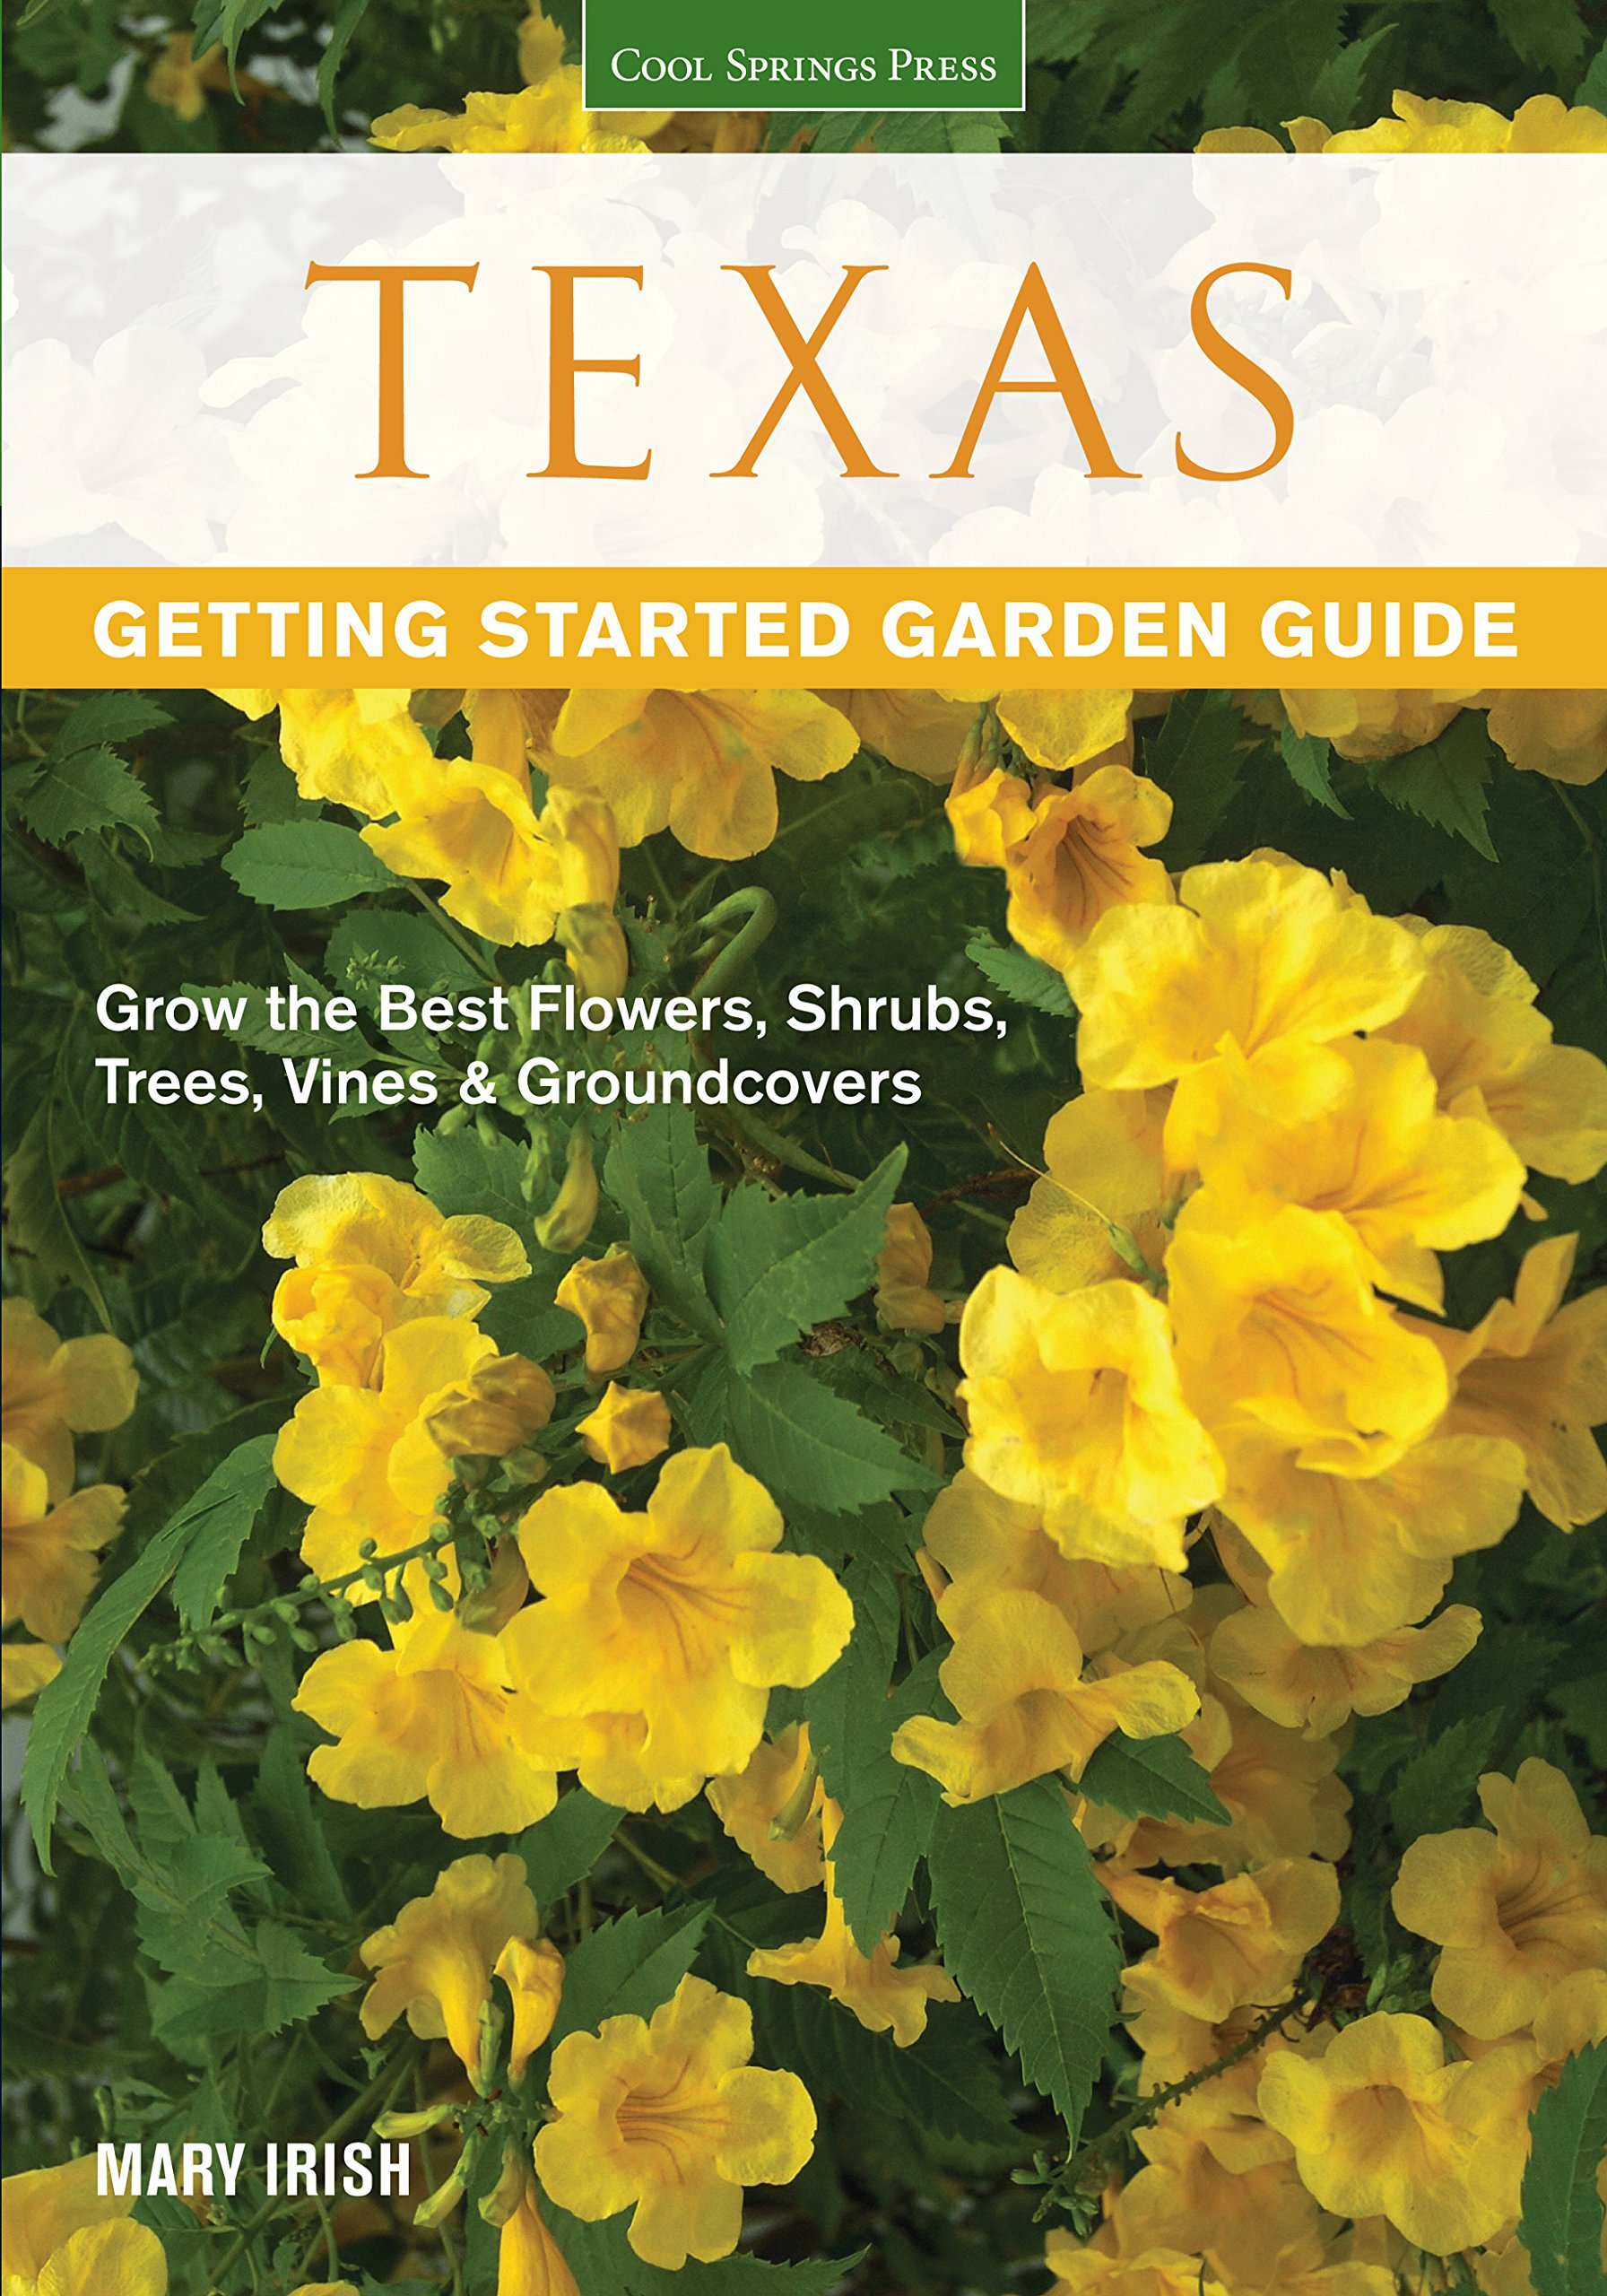 Texas getting started garden guide grow the best flowers shrubs texas getting started garden guide grow the best flowers shrubs trees vines groundcovers garden guides dale groom 9781591865520 amazon books izmirmasajfo